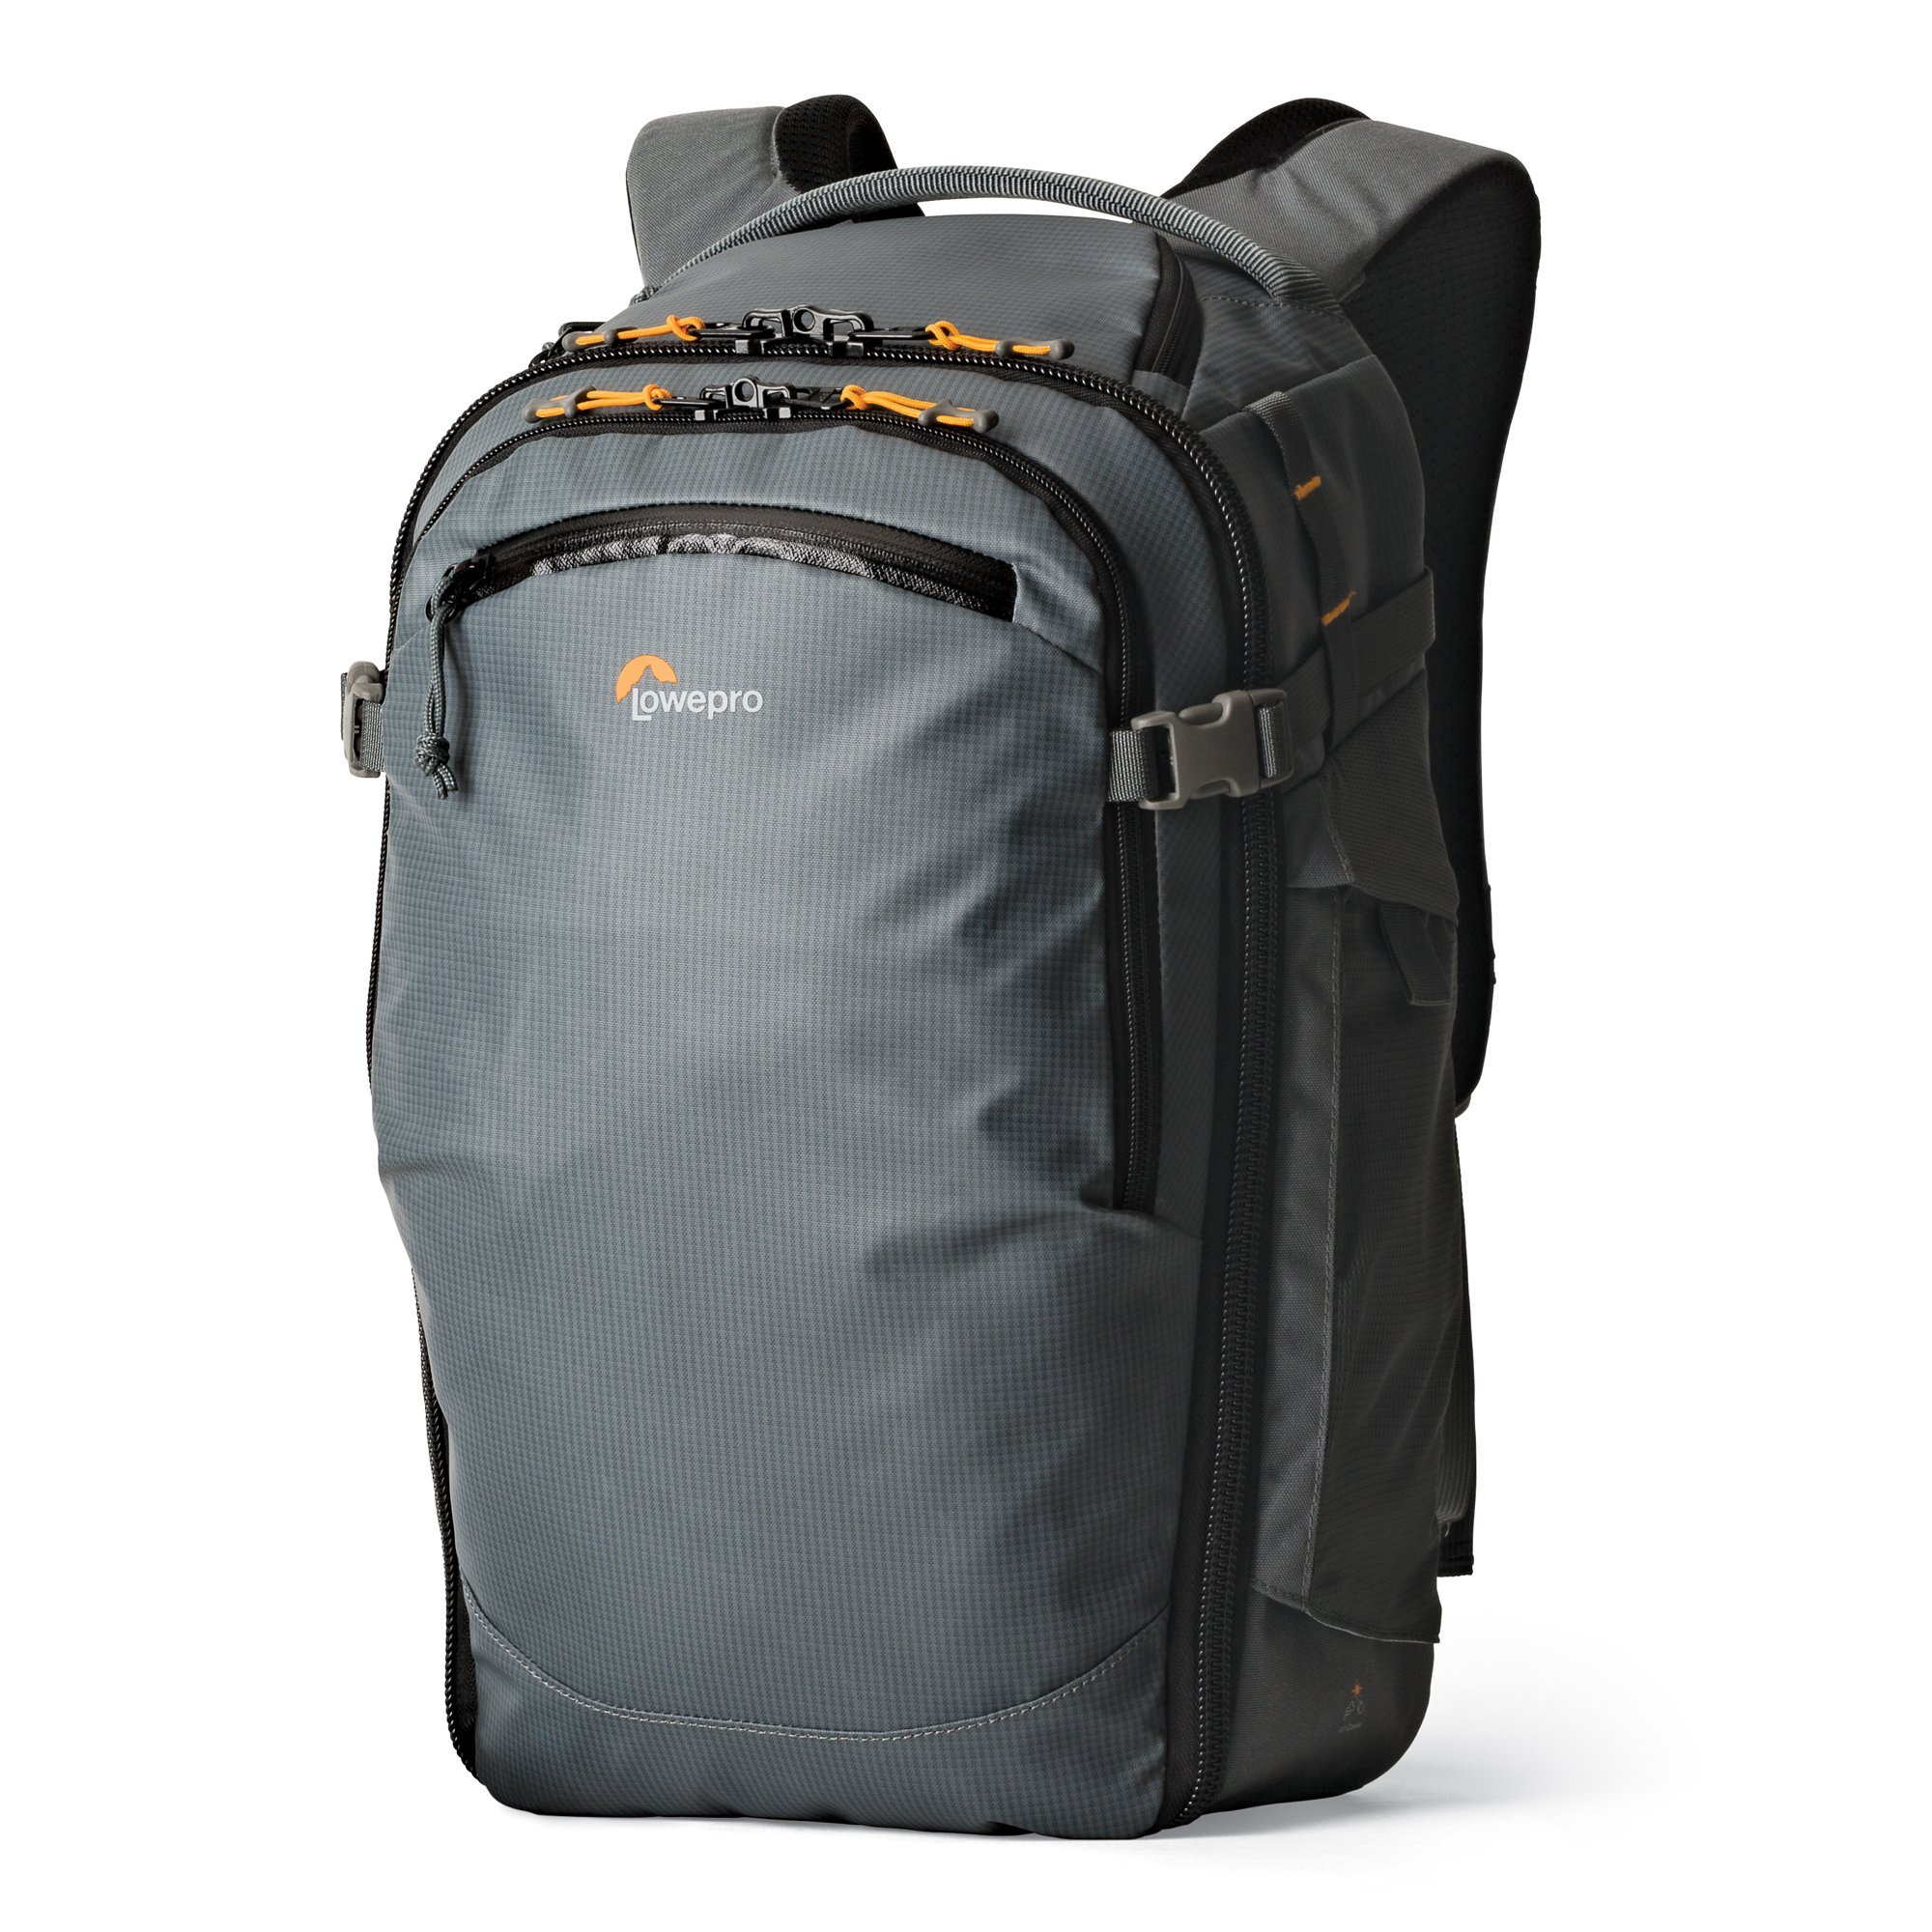 Lowepro HighLine BP 300 AW - Weatherproof & rugged 22-liter daypack for adventurous travelers who carry modern devices into any location by Lowepro